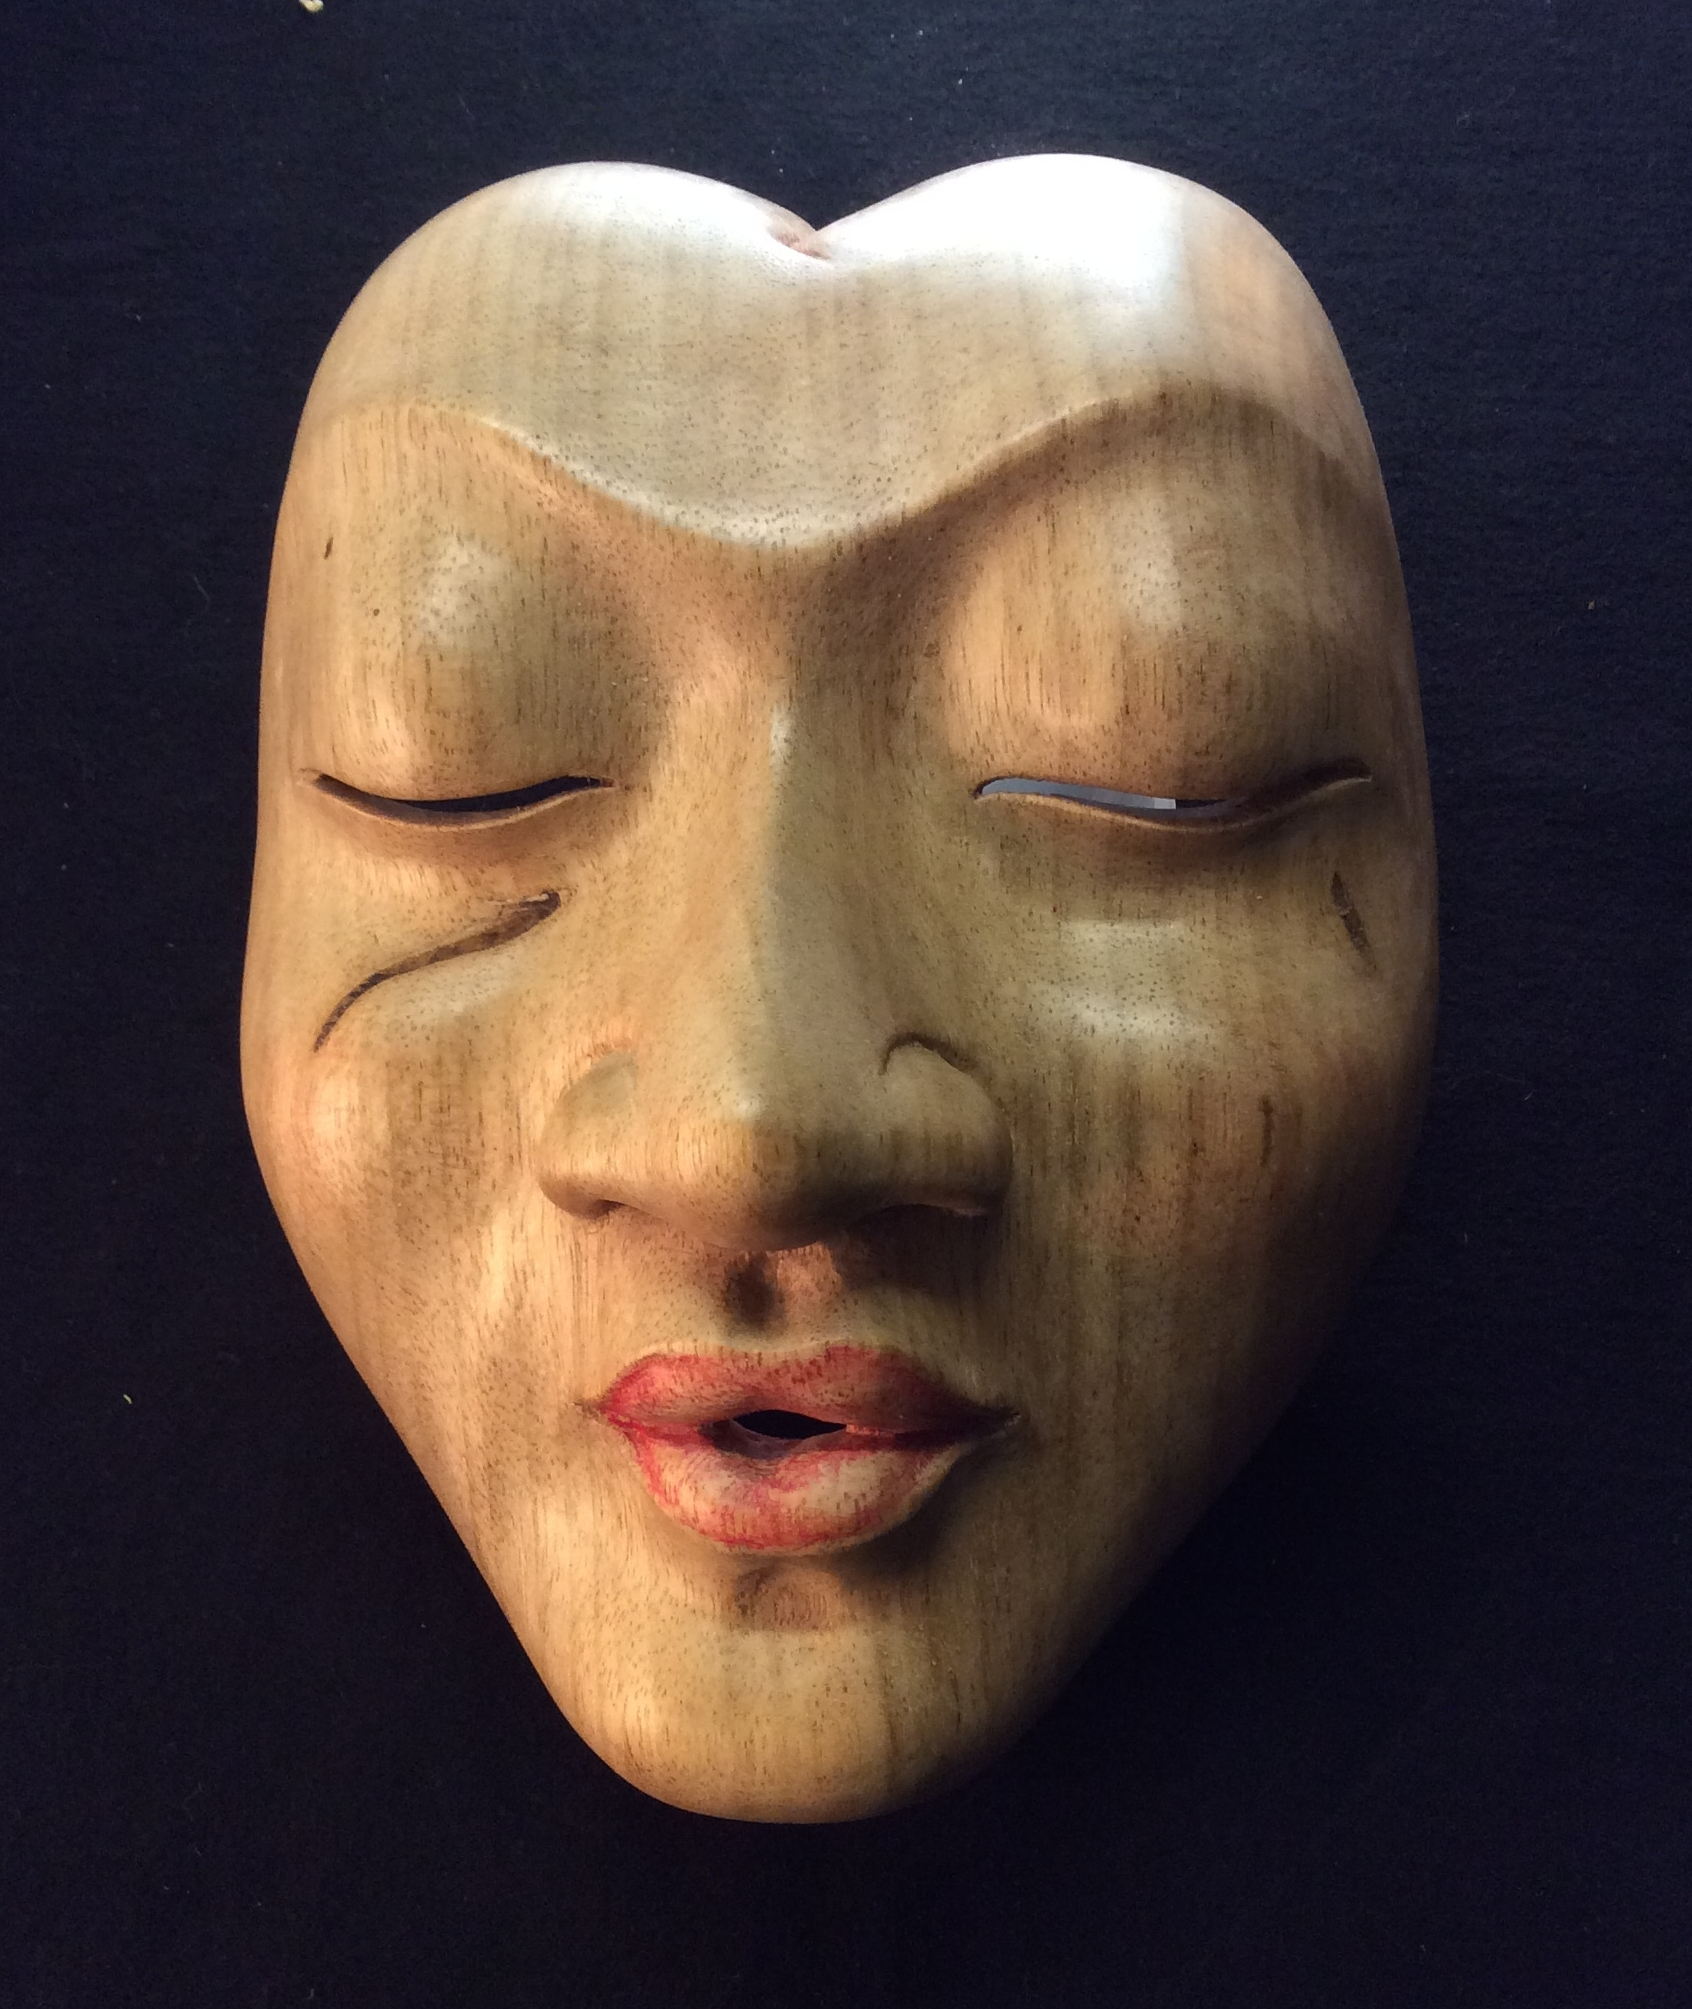 Week one mask. Pule wood (some of the older, drier wood) The dark marks under the eyes are pitch pockets. I love where they ended up but had nothing to do with that. We call that lucky carving. Photo by P. Walton